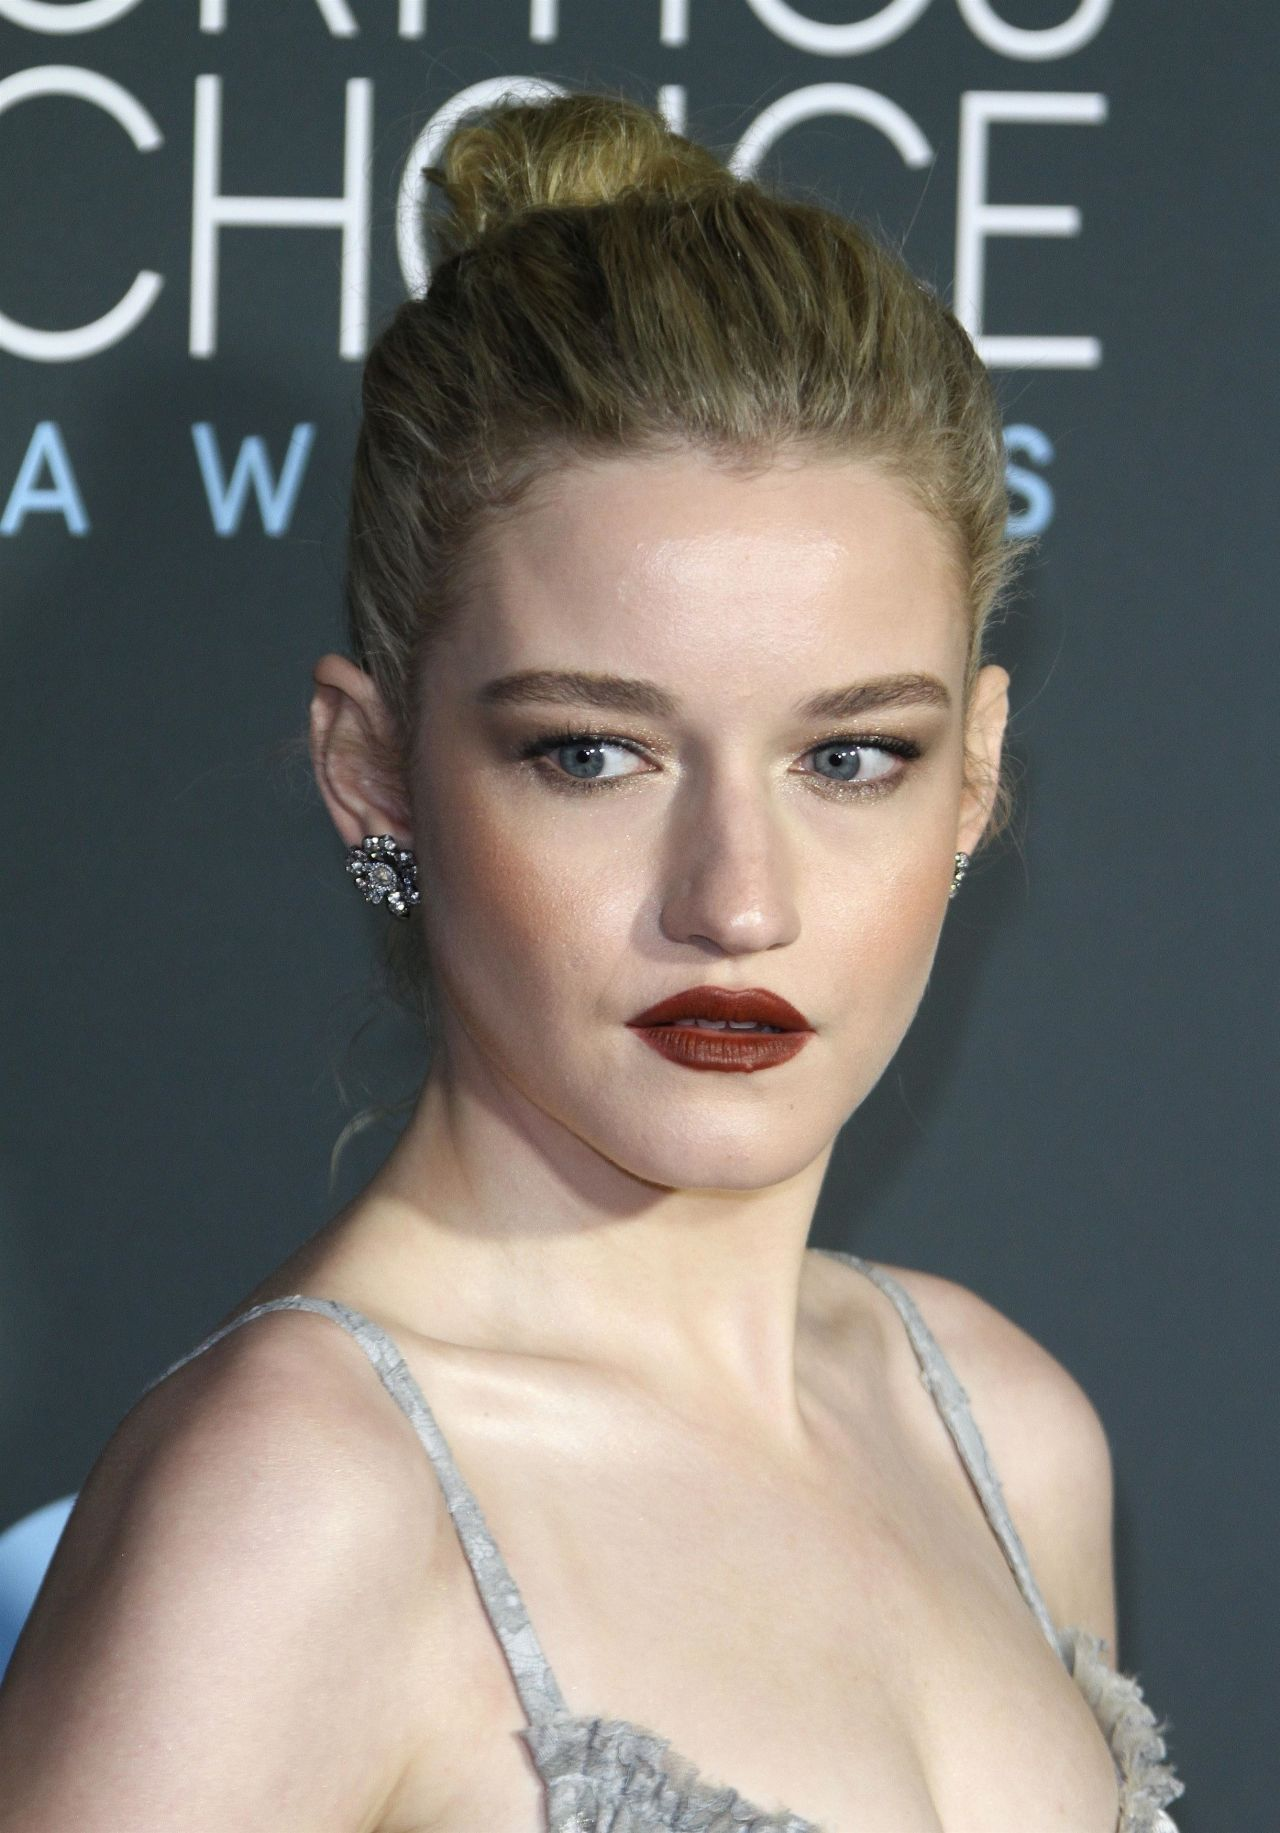 Julia Garner See Through 13 Photos: 2019 Critics' Choice Awards